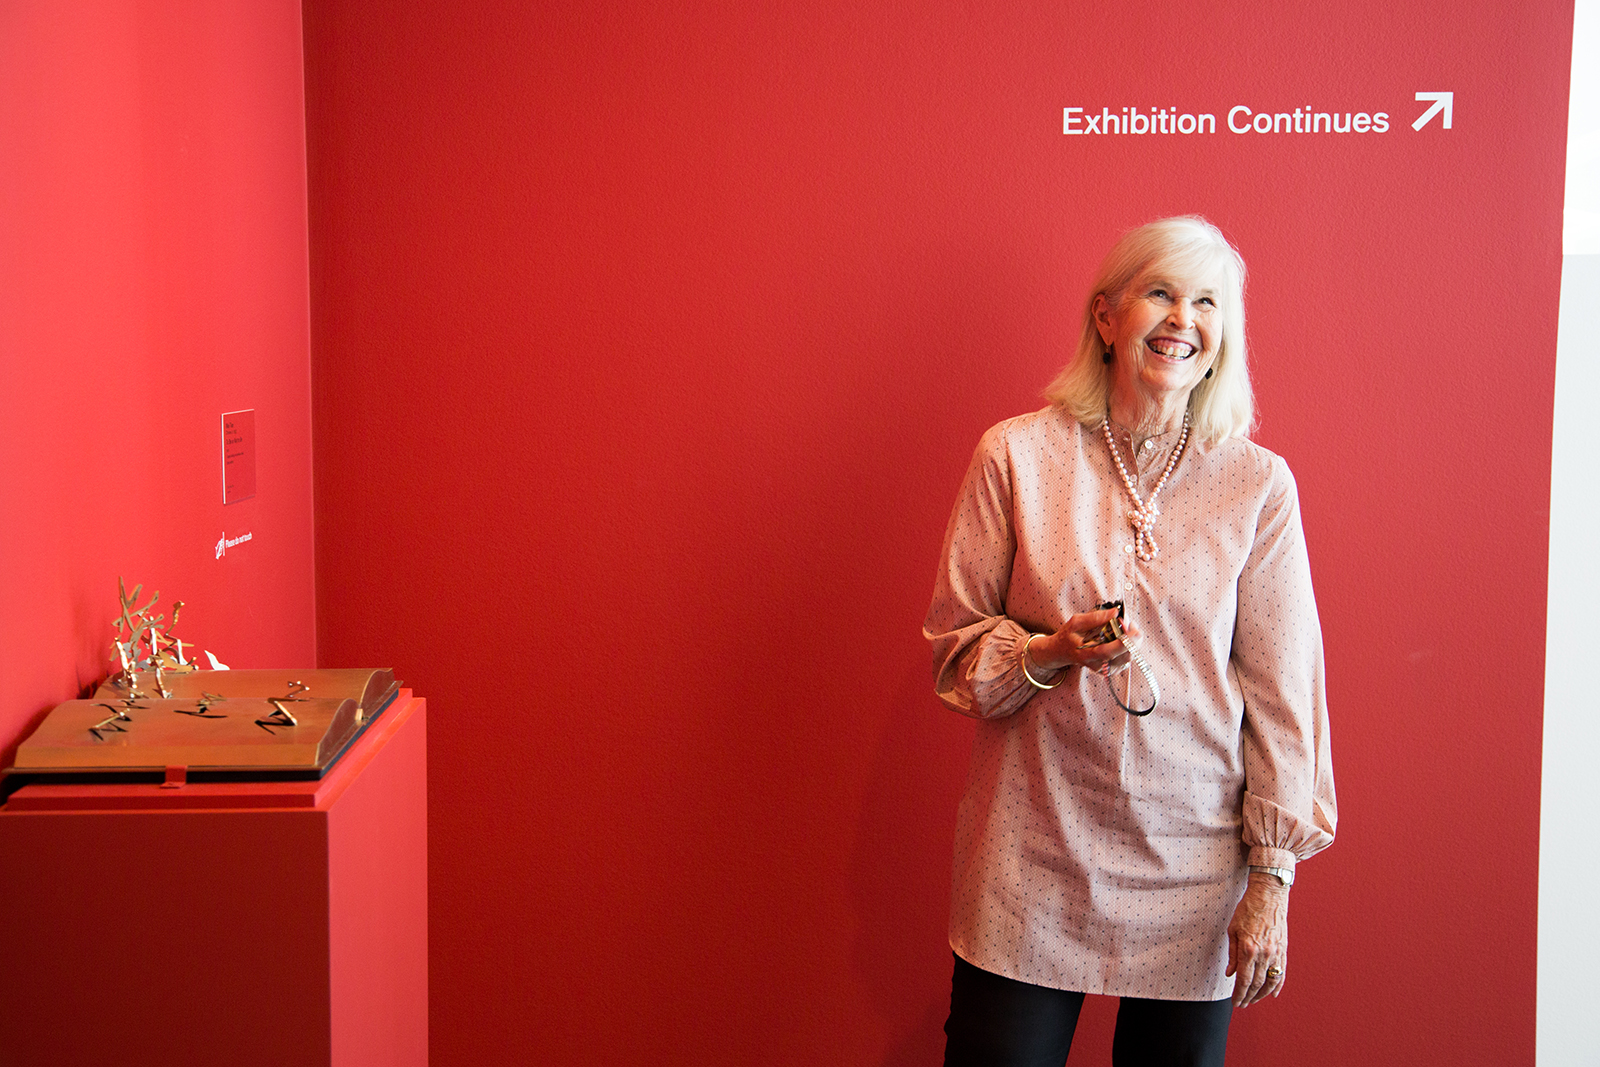 A blonde woman wearing a pink tunic smiles standing in front of a red wall